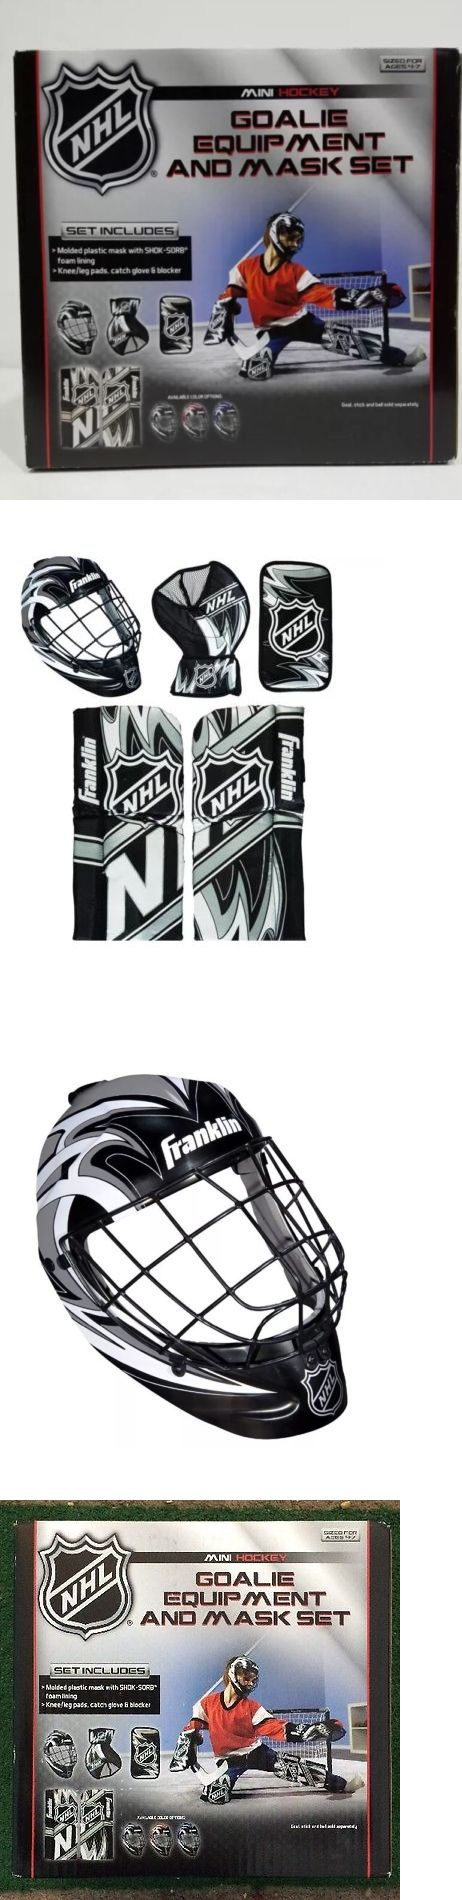 Other Hockey Goalie Equipment 79765: New Nhl Mini Hockey Franklin Sports Goalie Equipment And Mask Set -> BUY IT NOW ONLY: $35.95 on eBay!